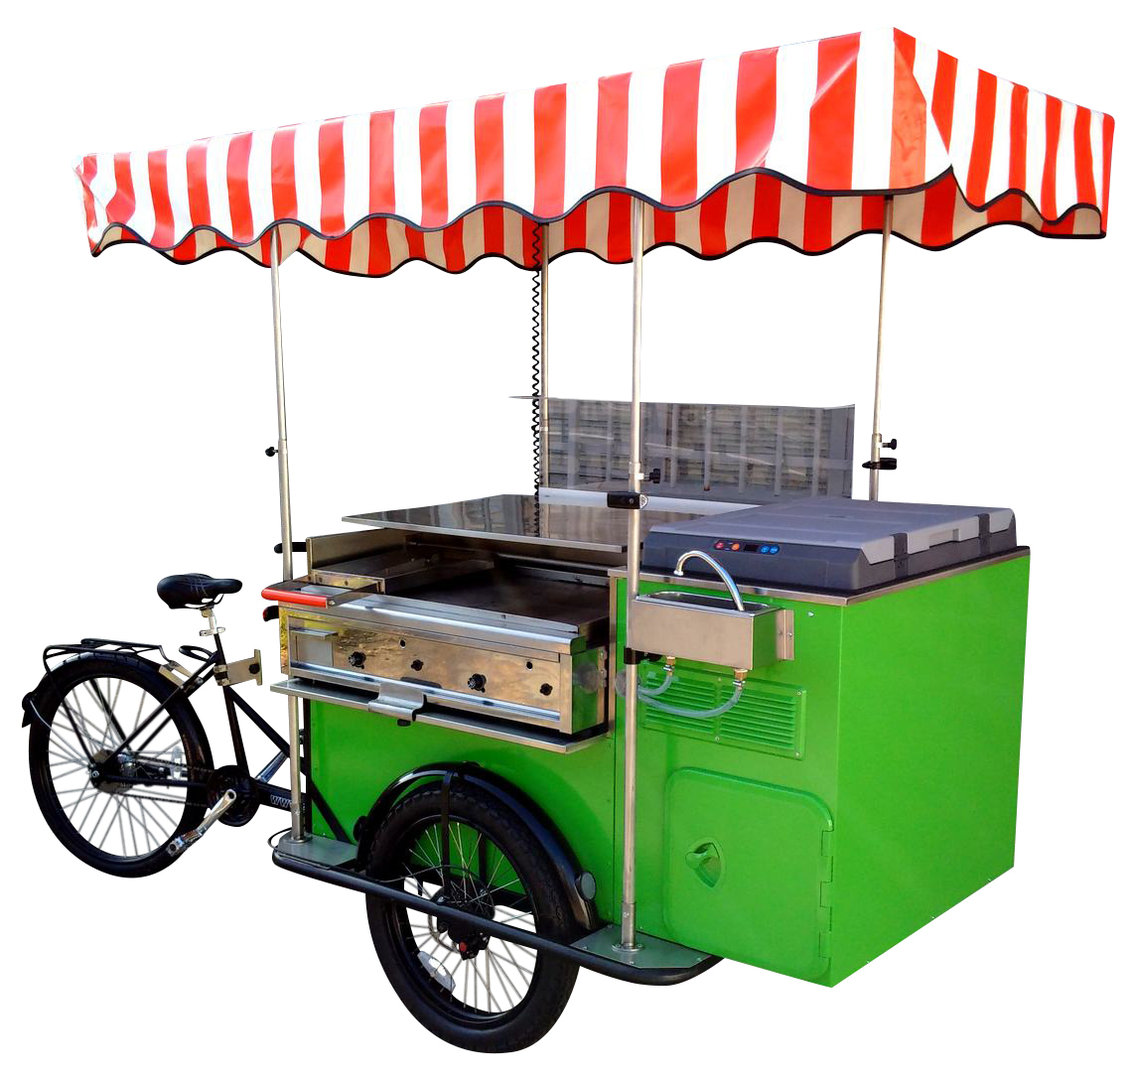 STREET FOOD BIKE QUADRA BASIC CYCLOPE